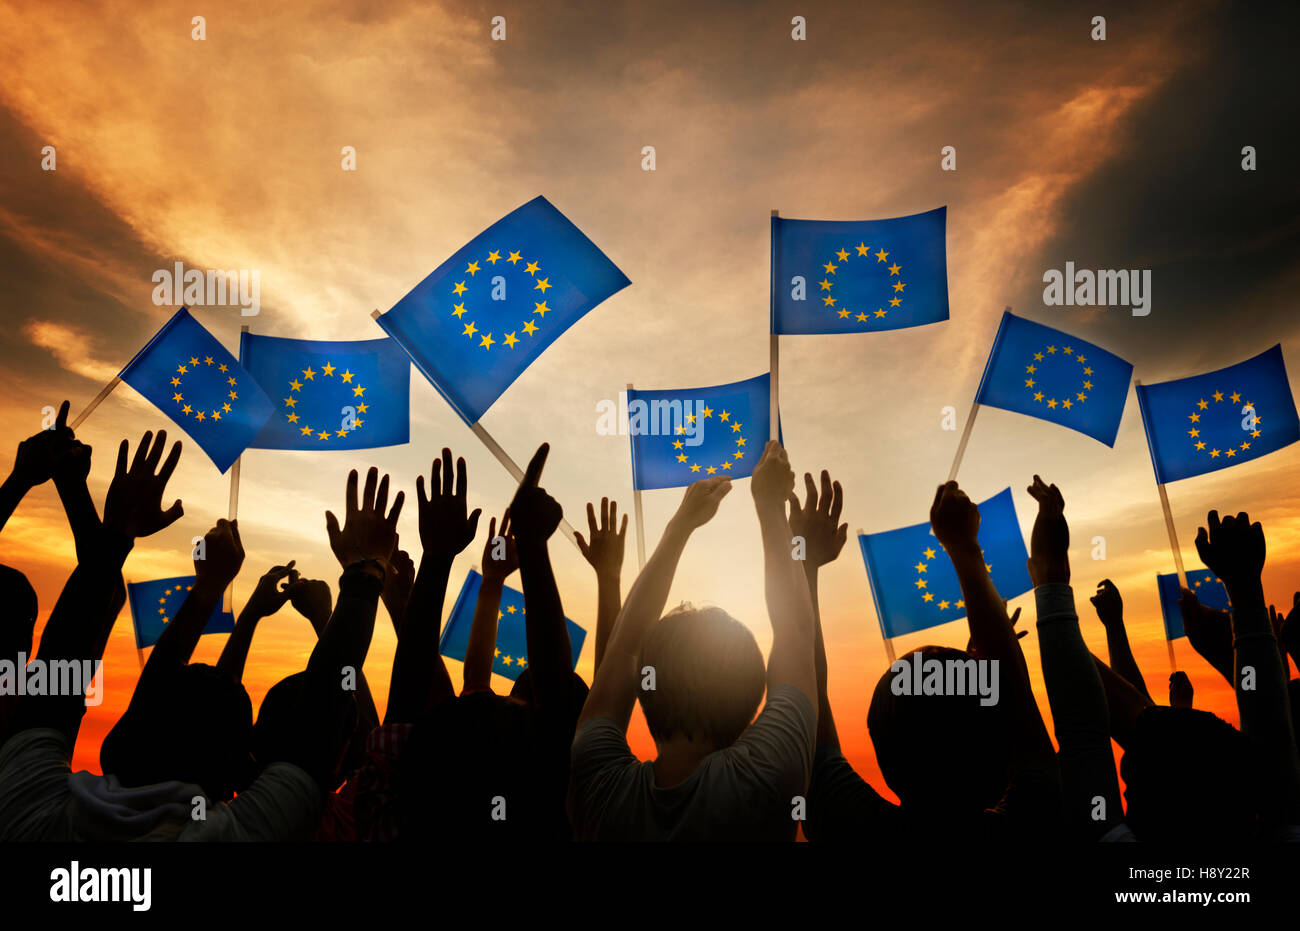 Group of People Waving European Union Flags in Back Lit Stock Photo